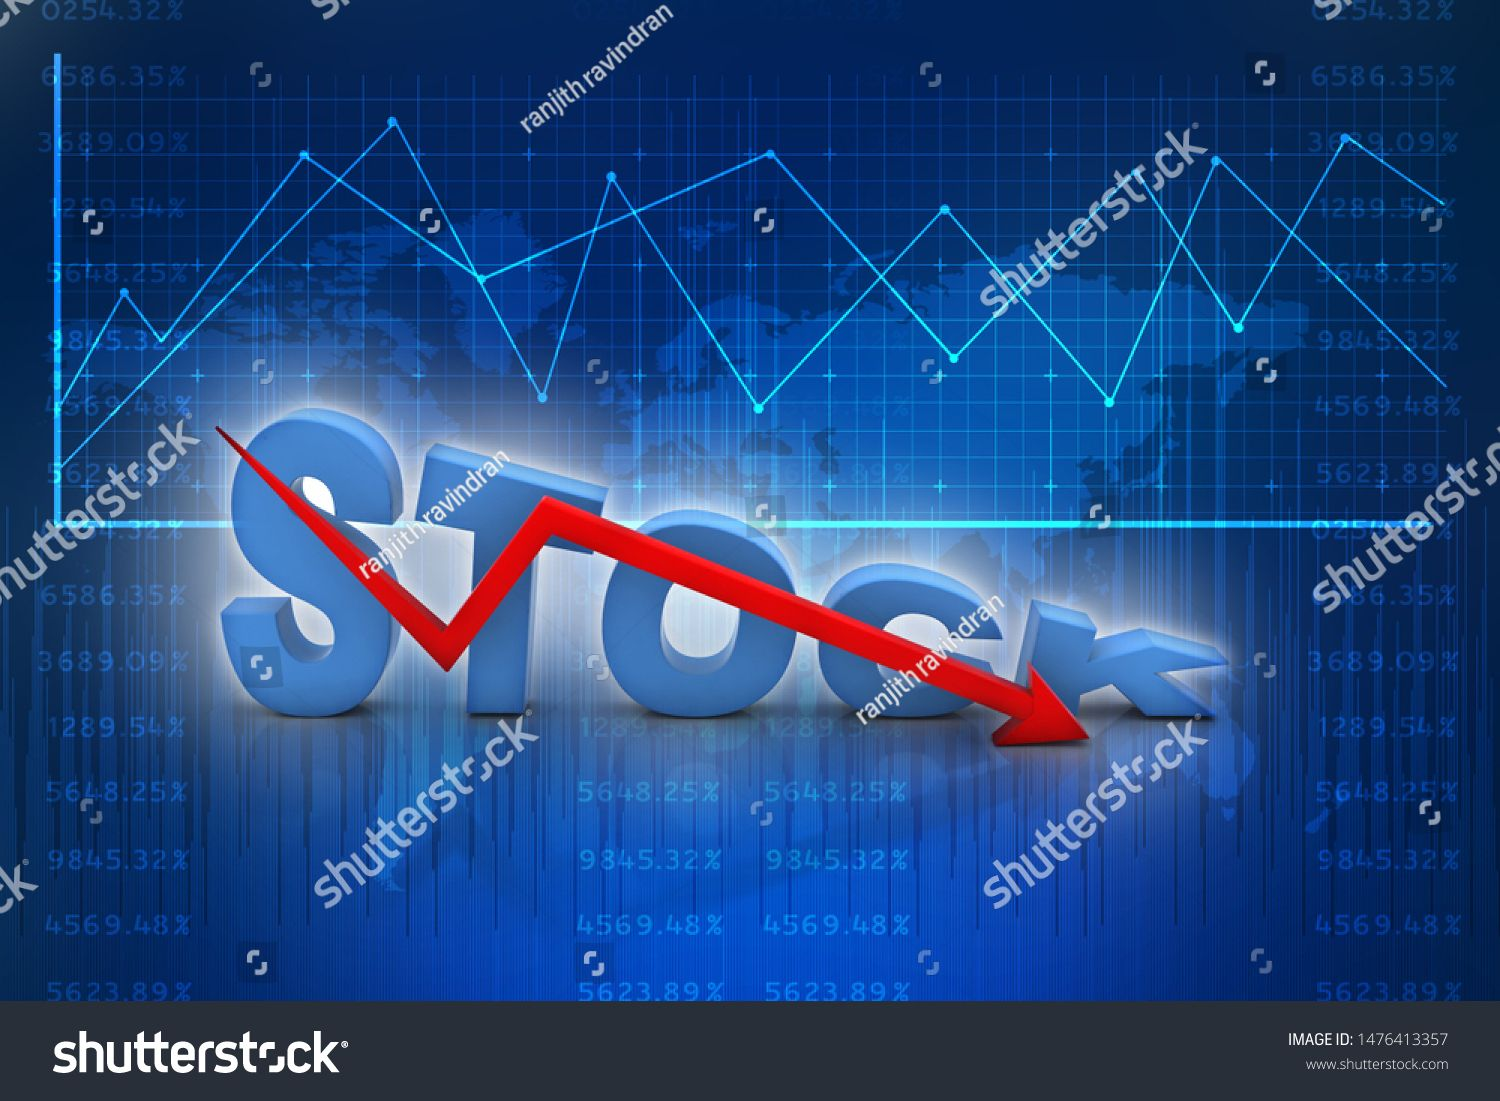 3d Rendering Stock Market Online Business Concept Stock Business Graph Sponsored Ad Market On In 2020 Online Business Marketing Online Marketing Online Business